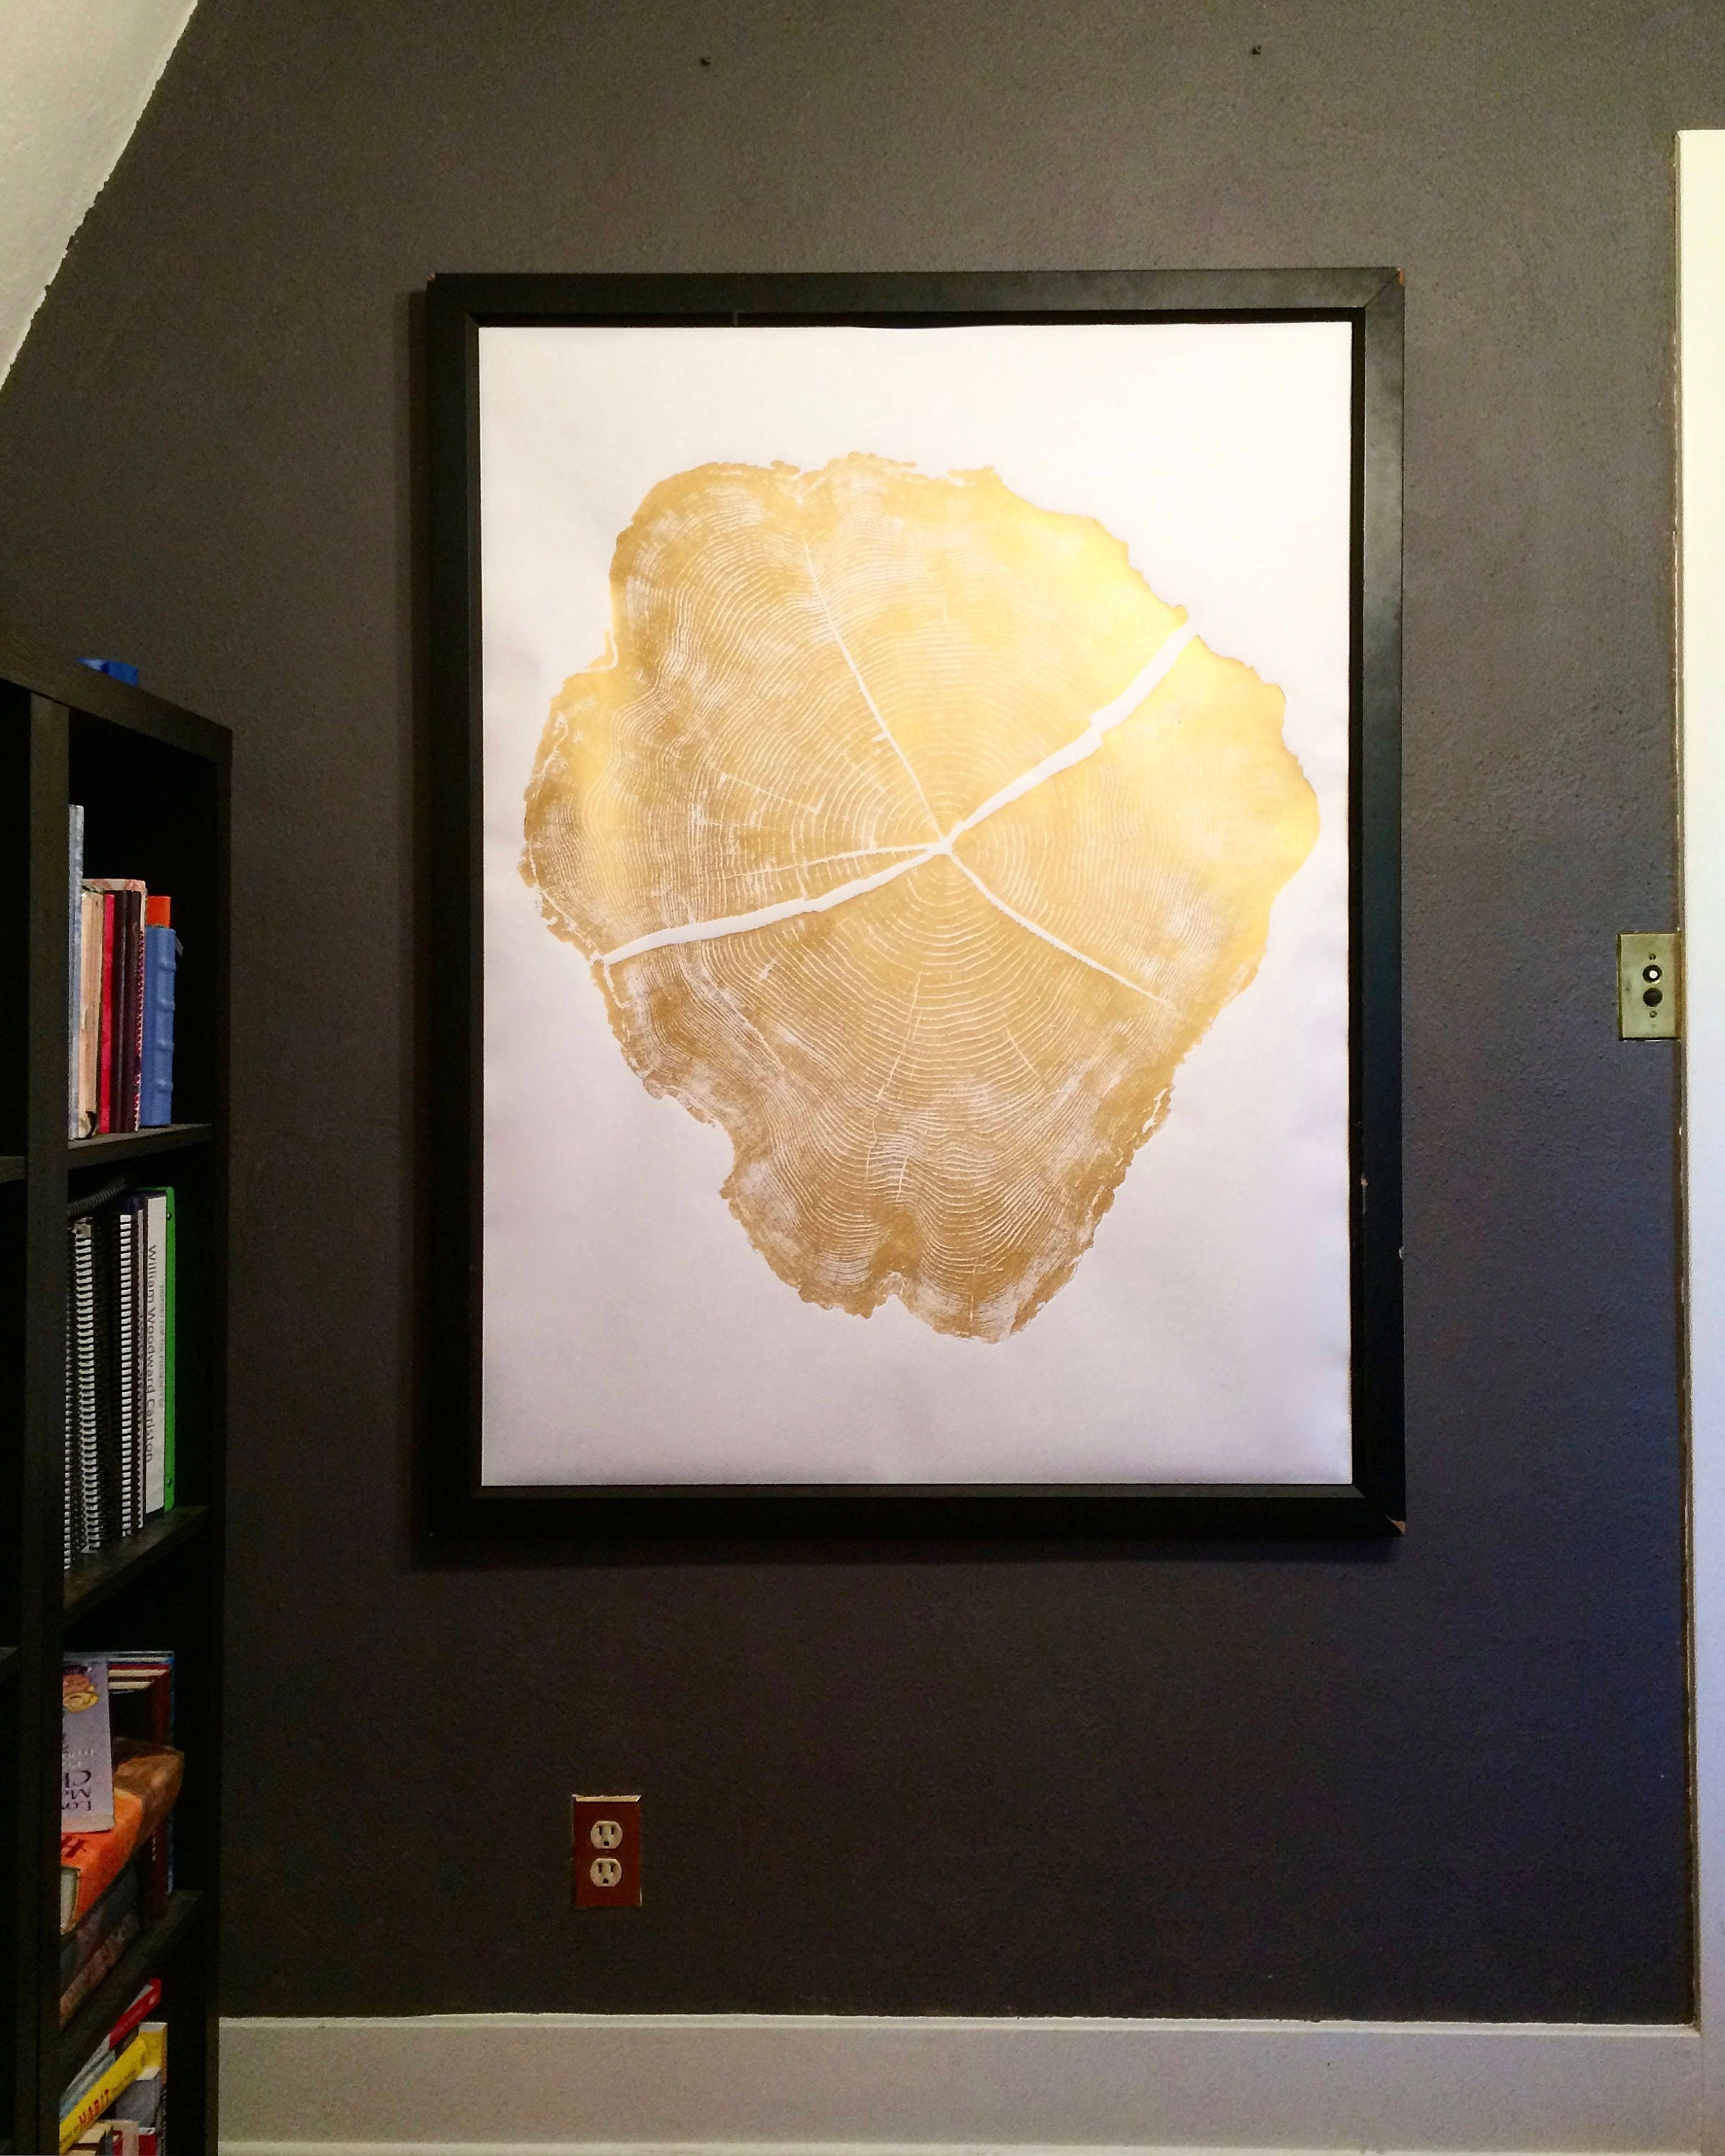 large gold art oversized gold art black locust tree oversized wall art real tree stump art gold home decal gold wall art erik linton